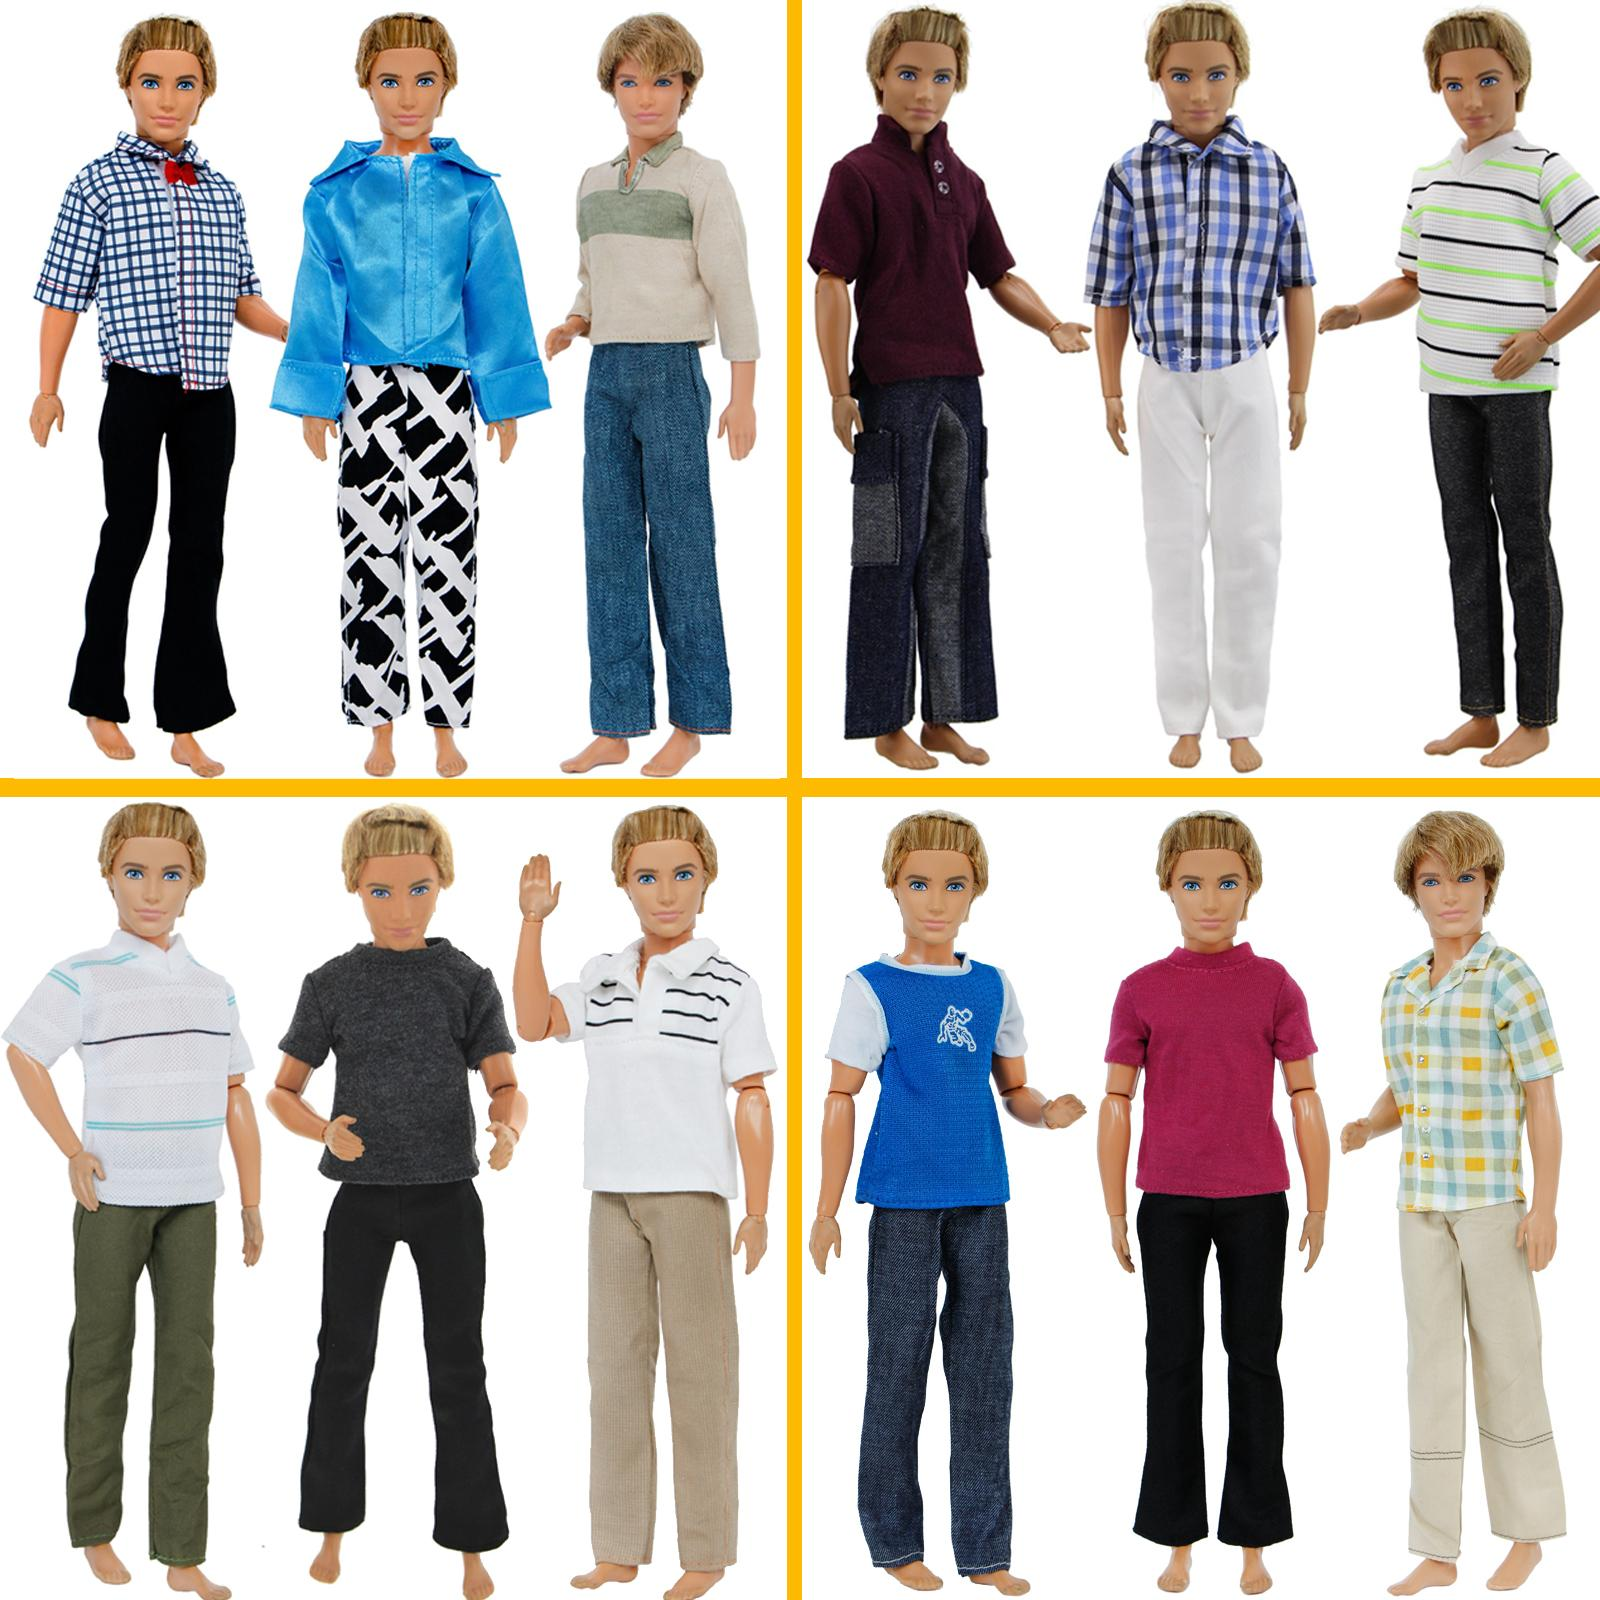 3 Set Men Outfits Pants Trousers + Tops Plaid Striped T-Shirt Doll Accessories Fashion Clothes for Barbie Doll Ken Clothes Gifts